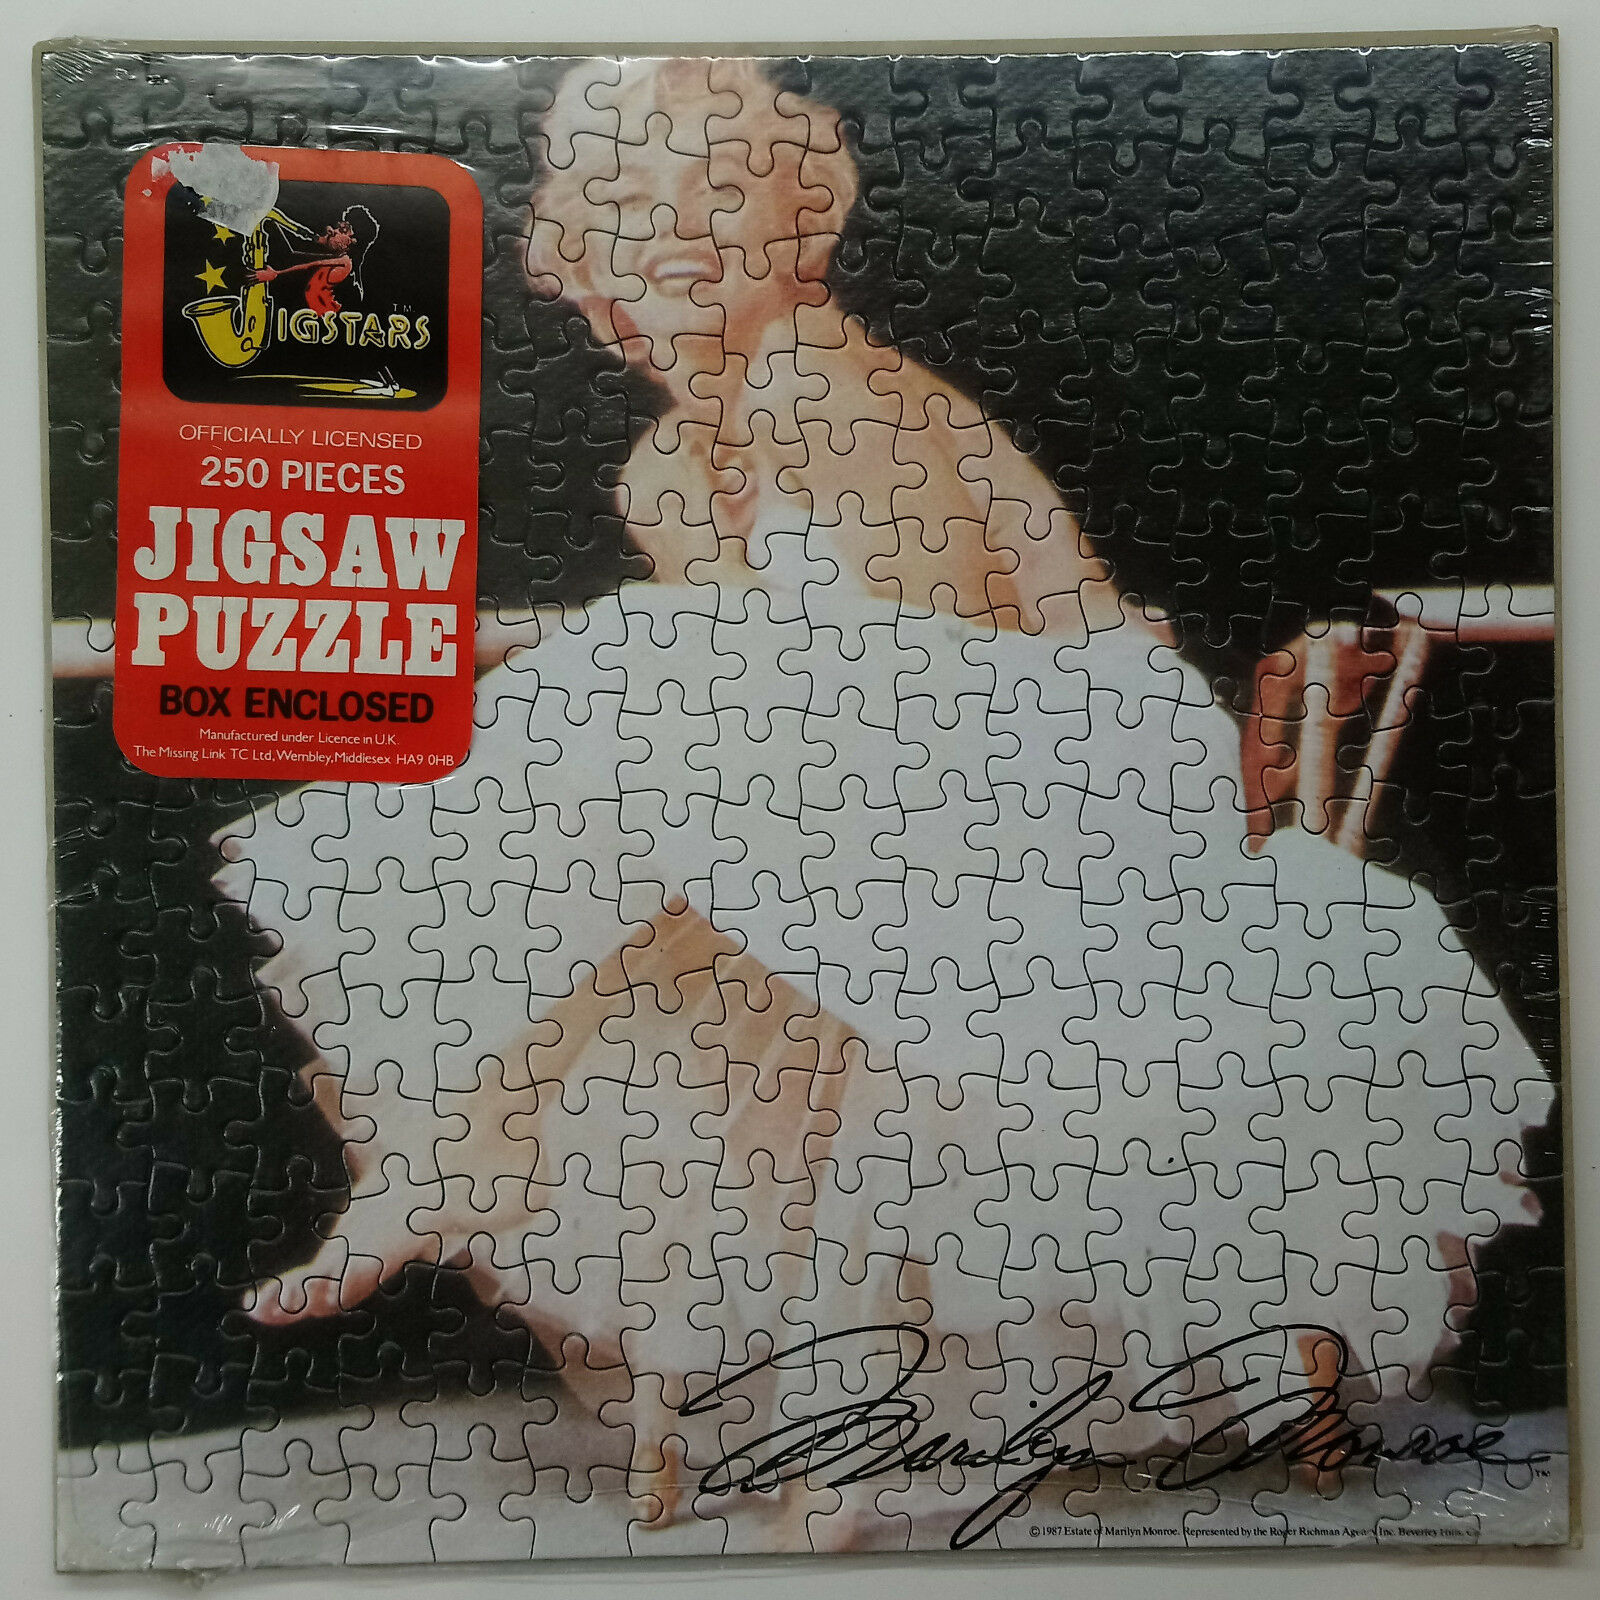 1987 MARILYN MONROE JIGSAW PUZZLE 250 PIECES SEALED NEW